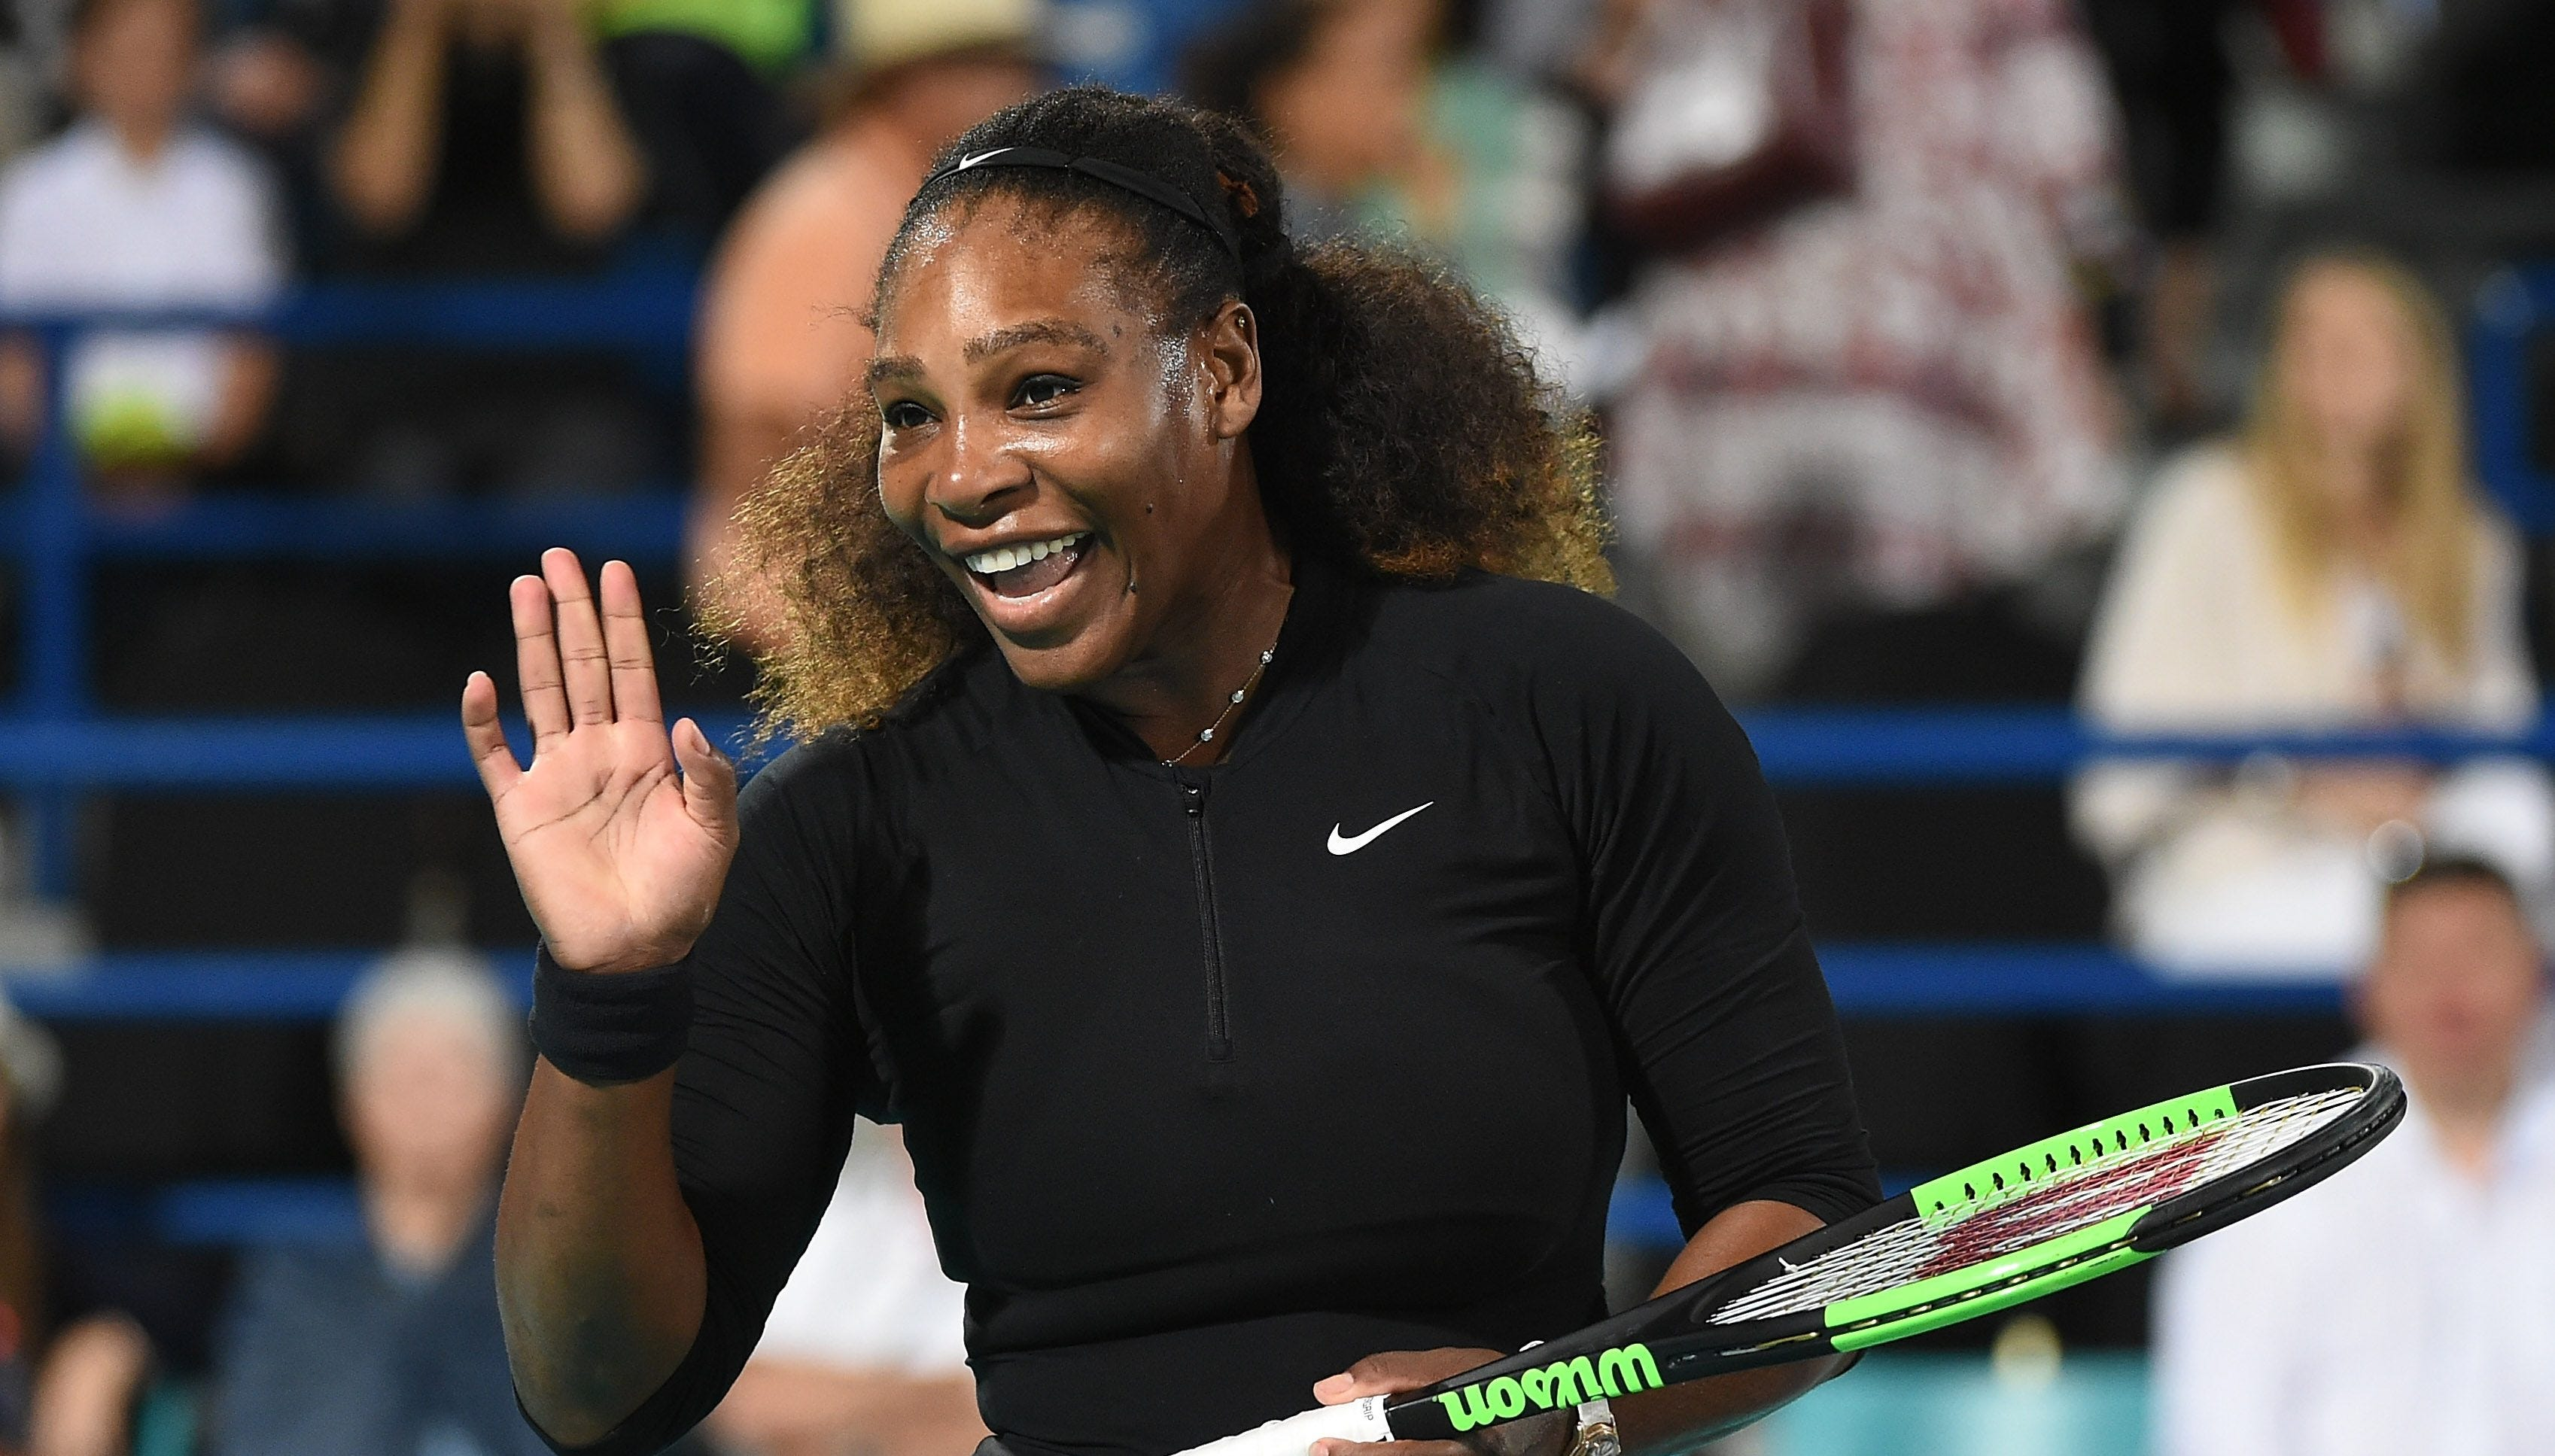 Serena Williams joins Colin Kaepernick's donation push with $10,000 gift